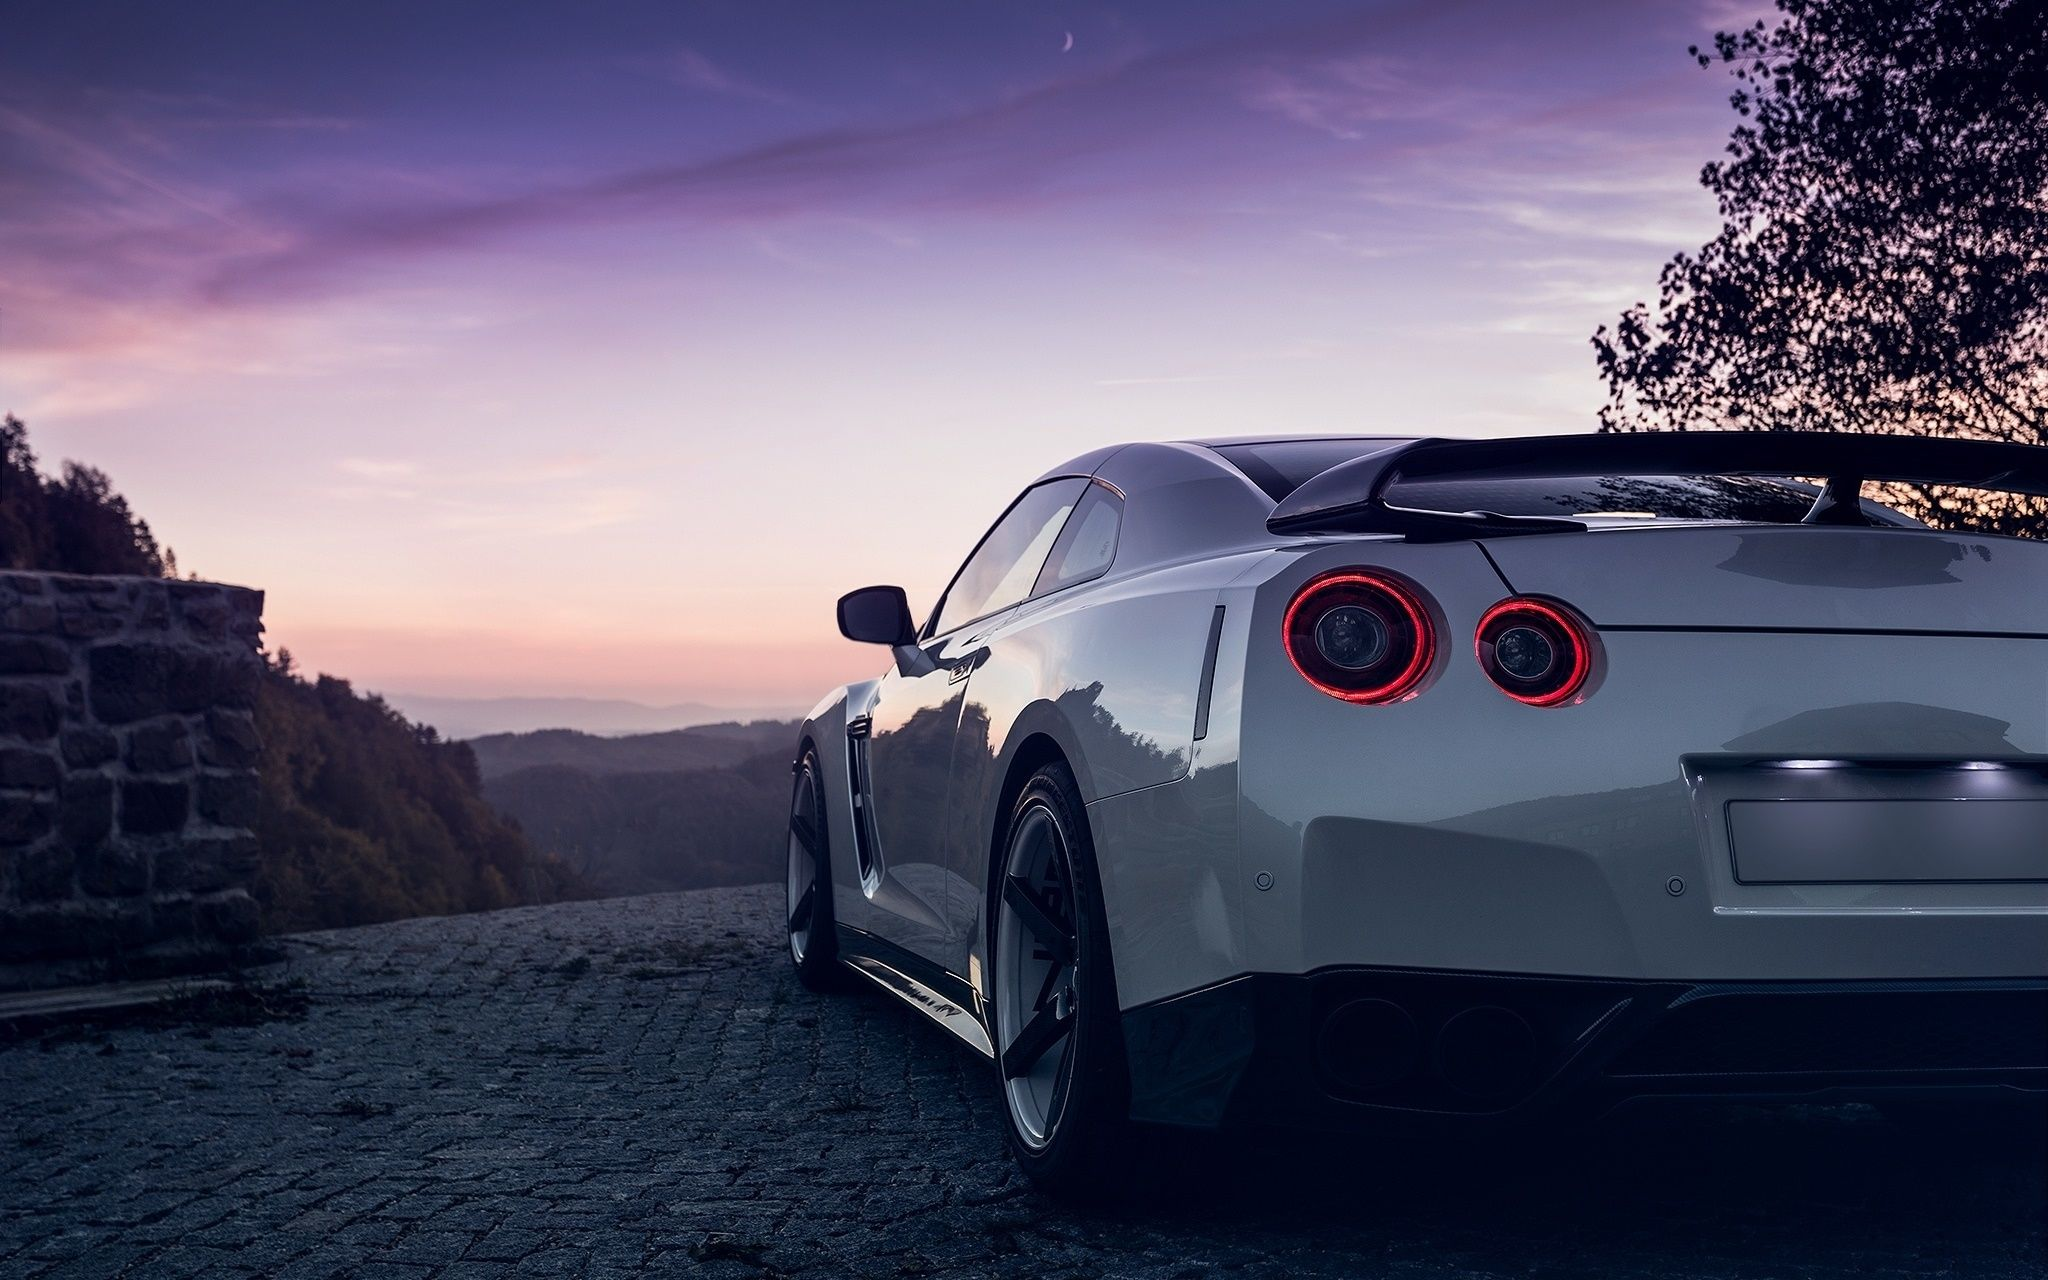 Nissan Skyline Gtr R Wallpapers Wallpaper R Gtr Nissan